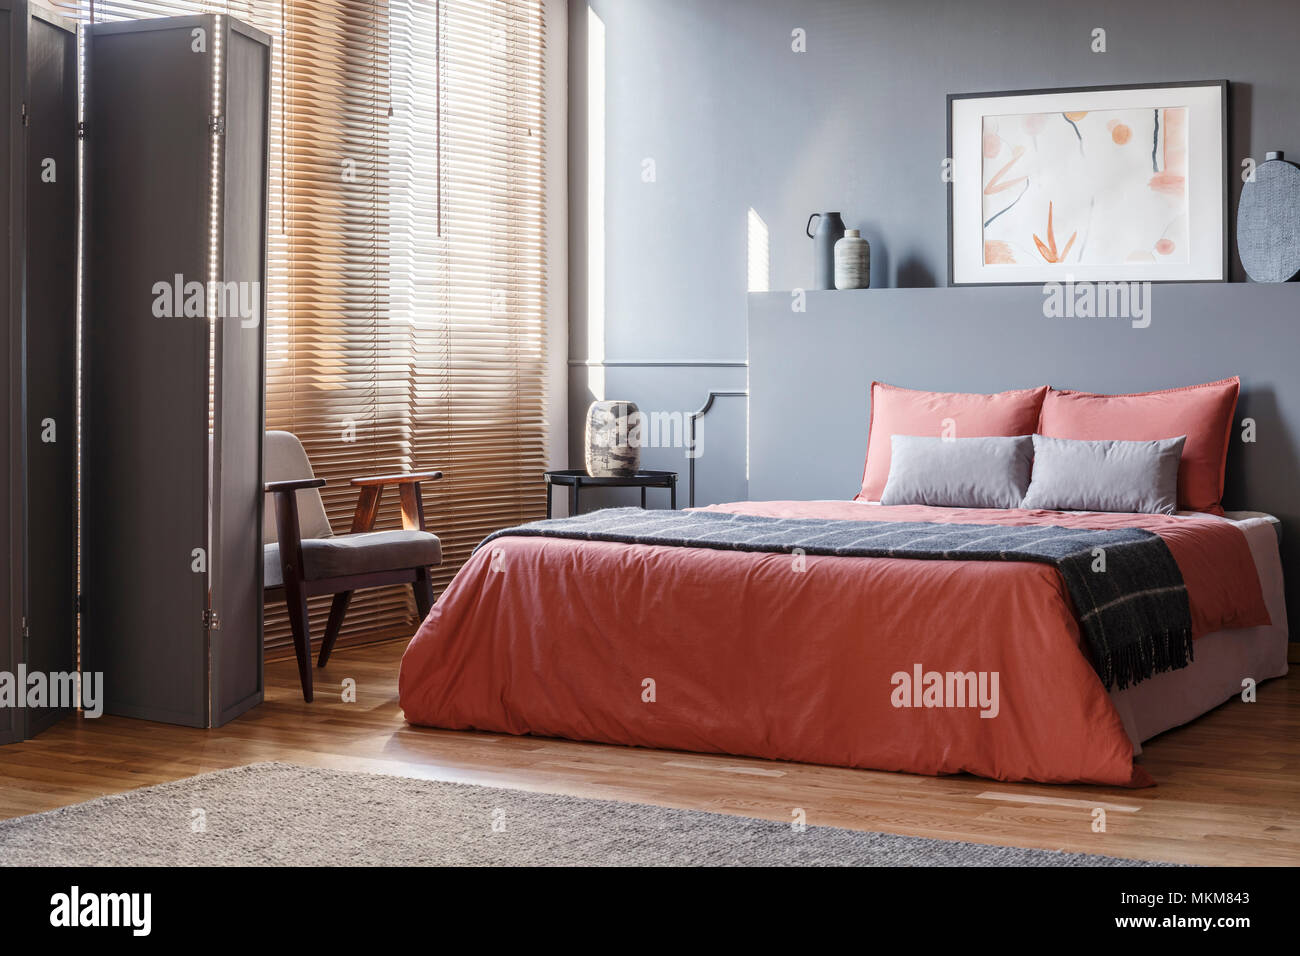 Real Photo Of Elegant Bedroom Interior With Black Walls Brown